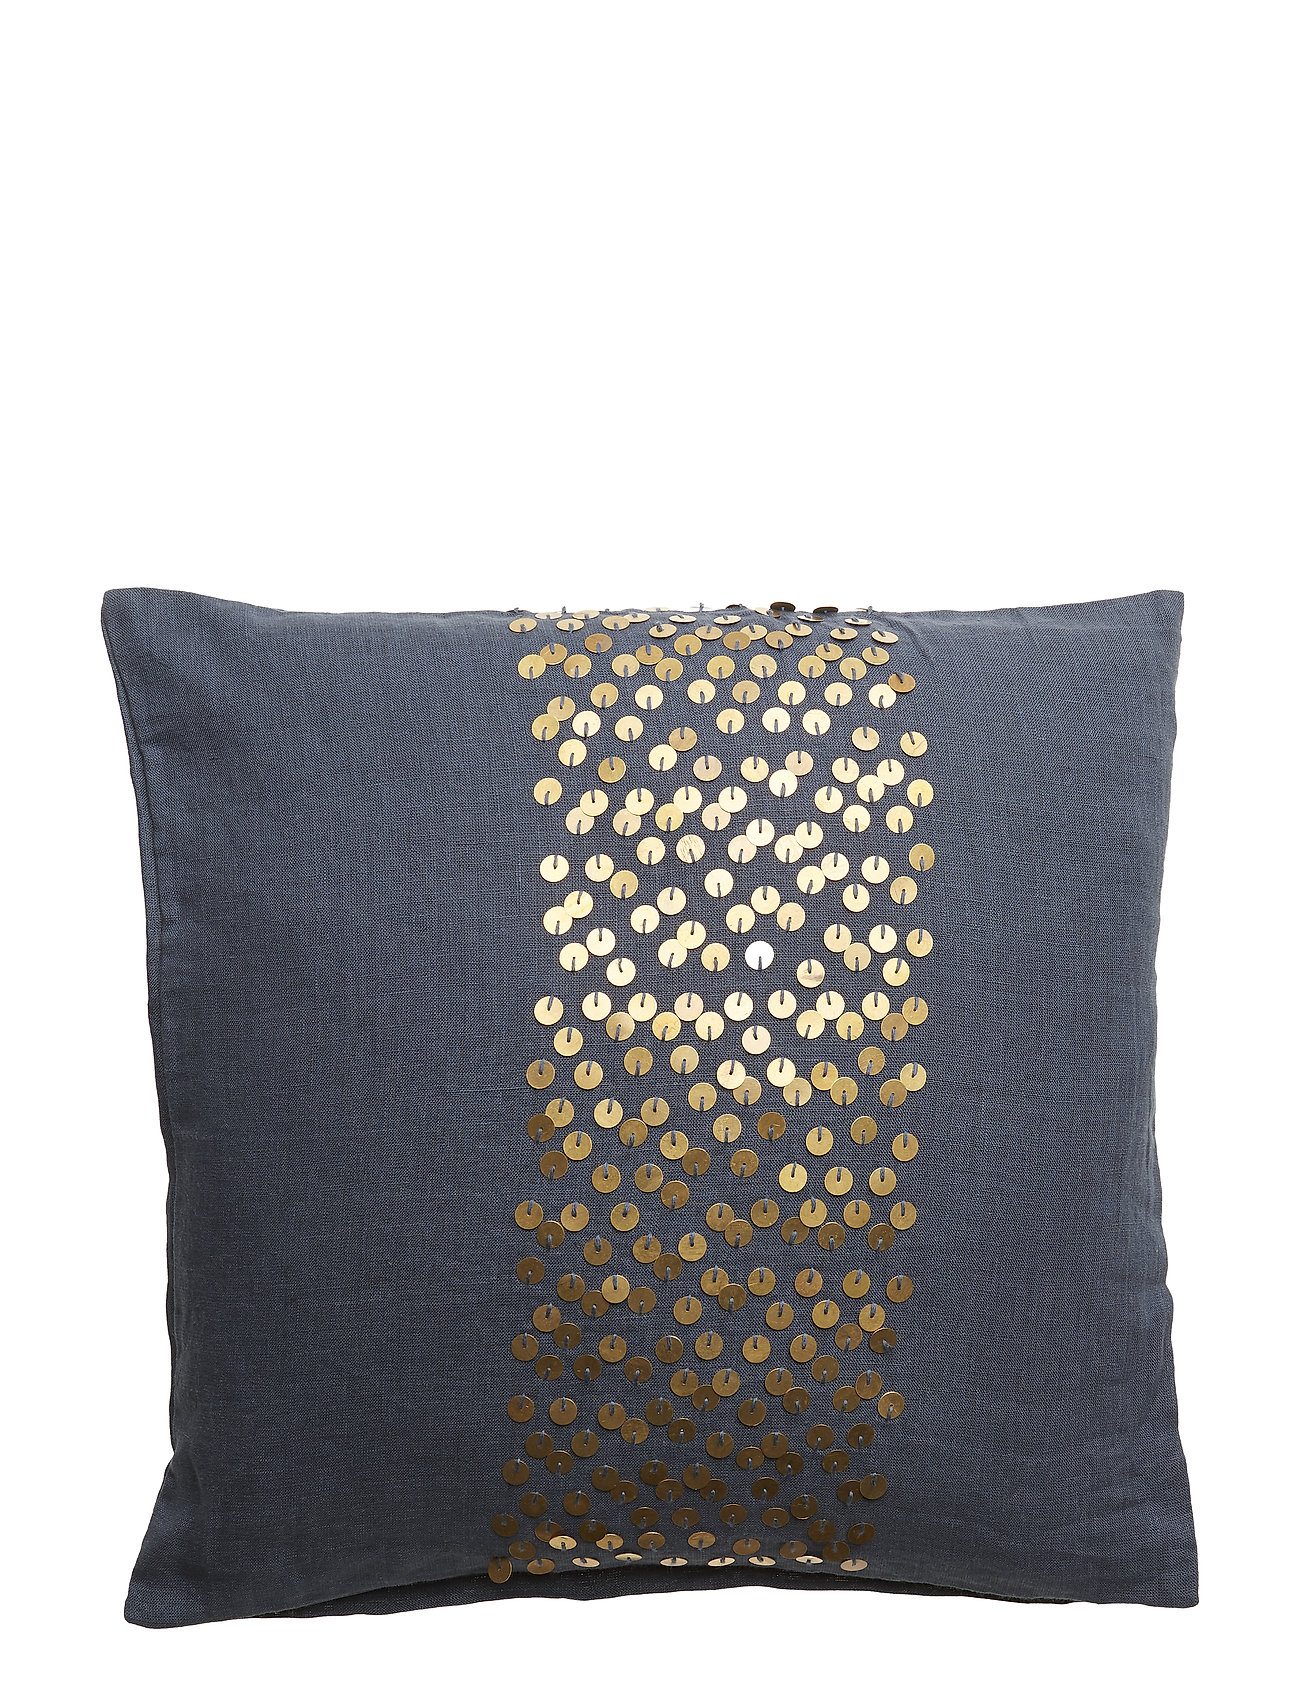 DAY Home Day Maroc Cushion Cover - NIGHT SKY